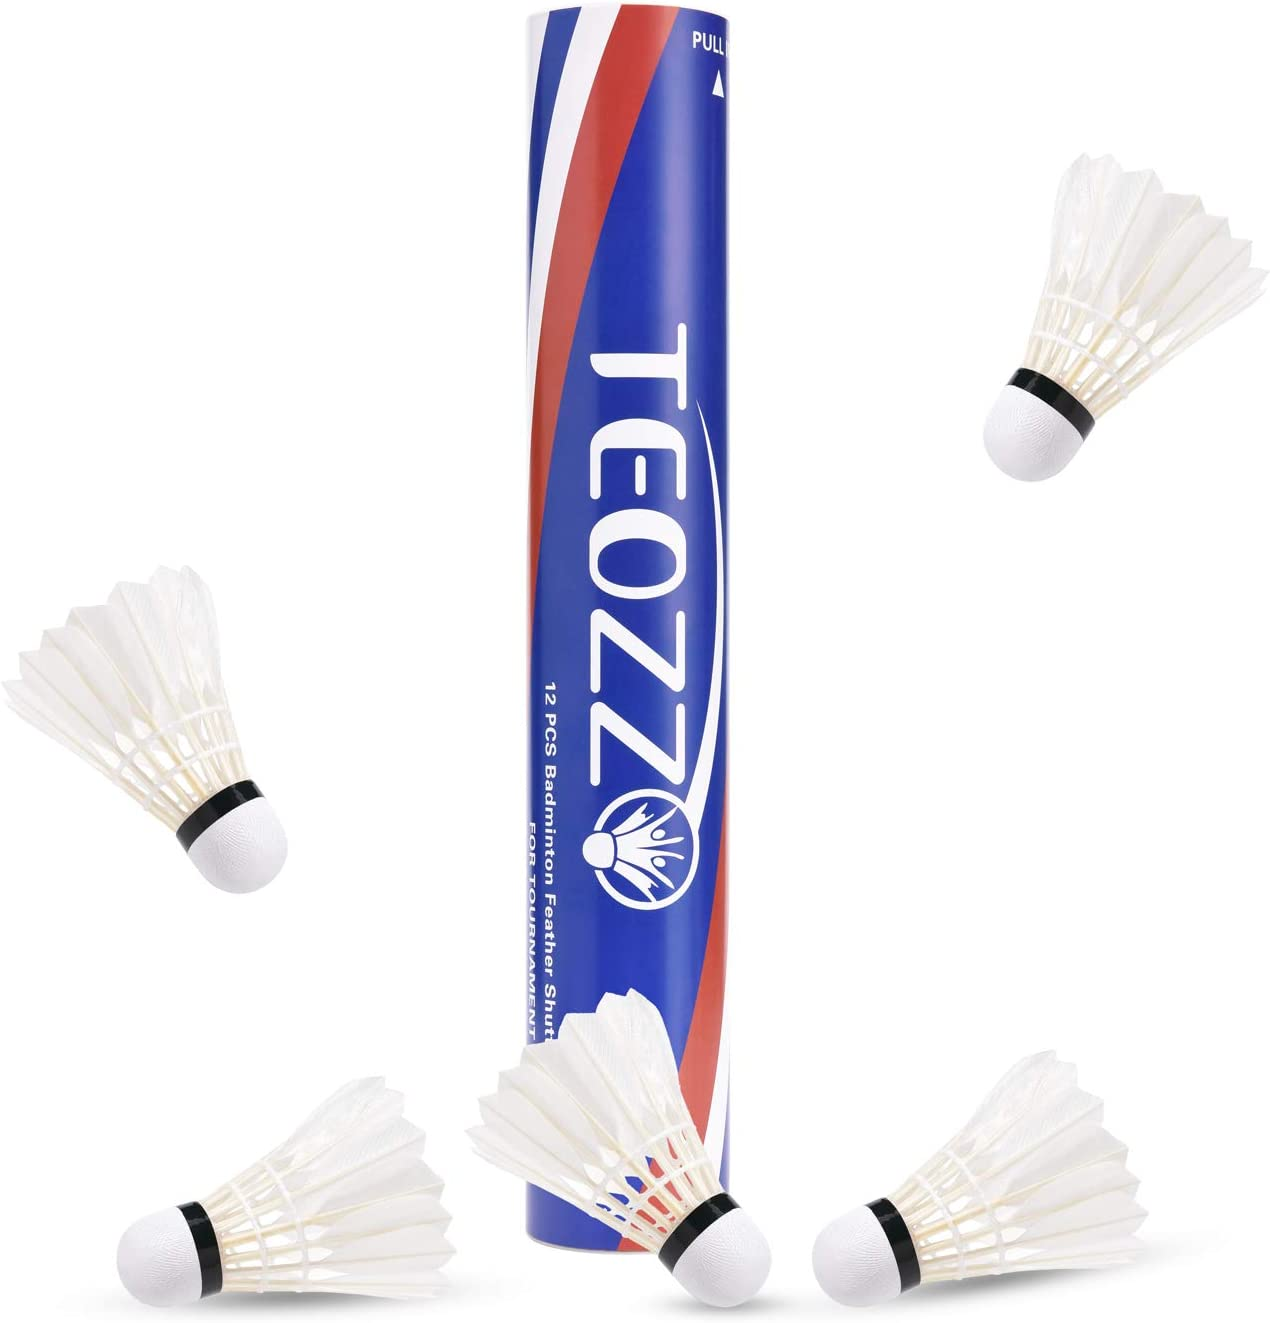 TEOZZO Goose Feather Badminton Shuttlecocks Pack of 12, Stable and Sturdy High Speed Badminton Shuttles, Training Shuttlecock for Indoor and Outdoor ...